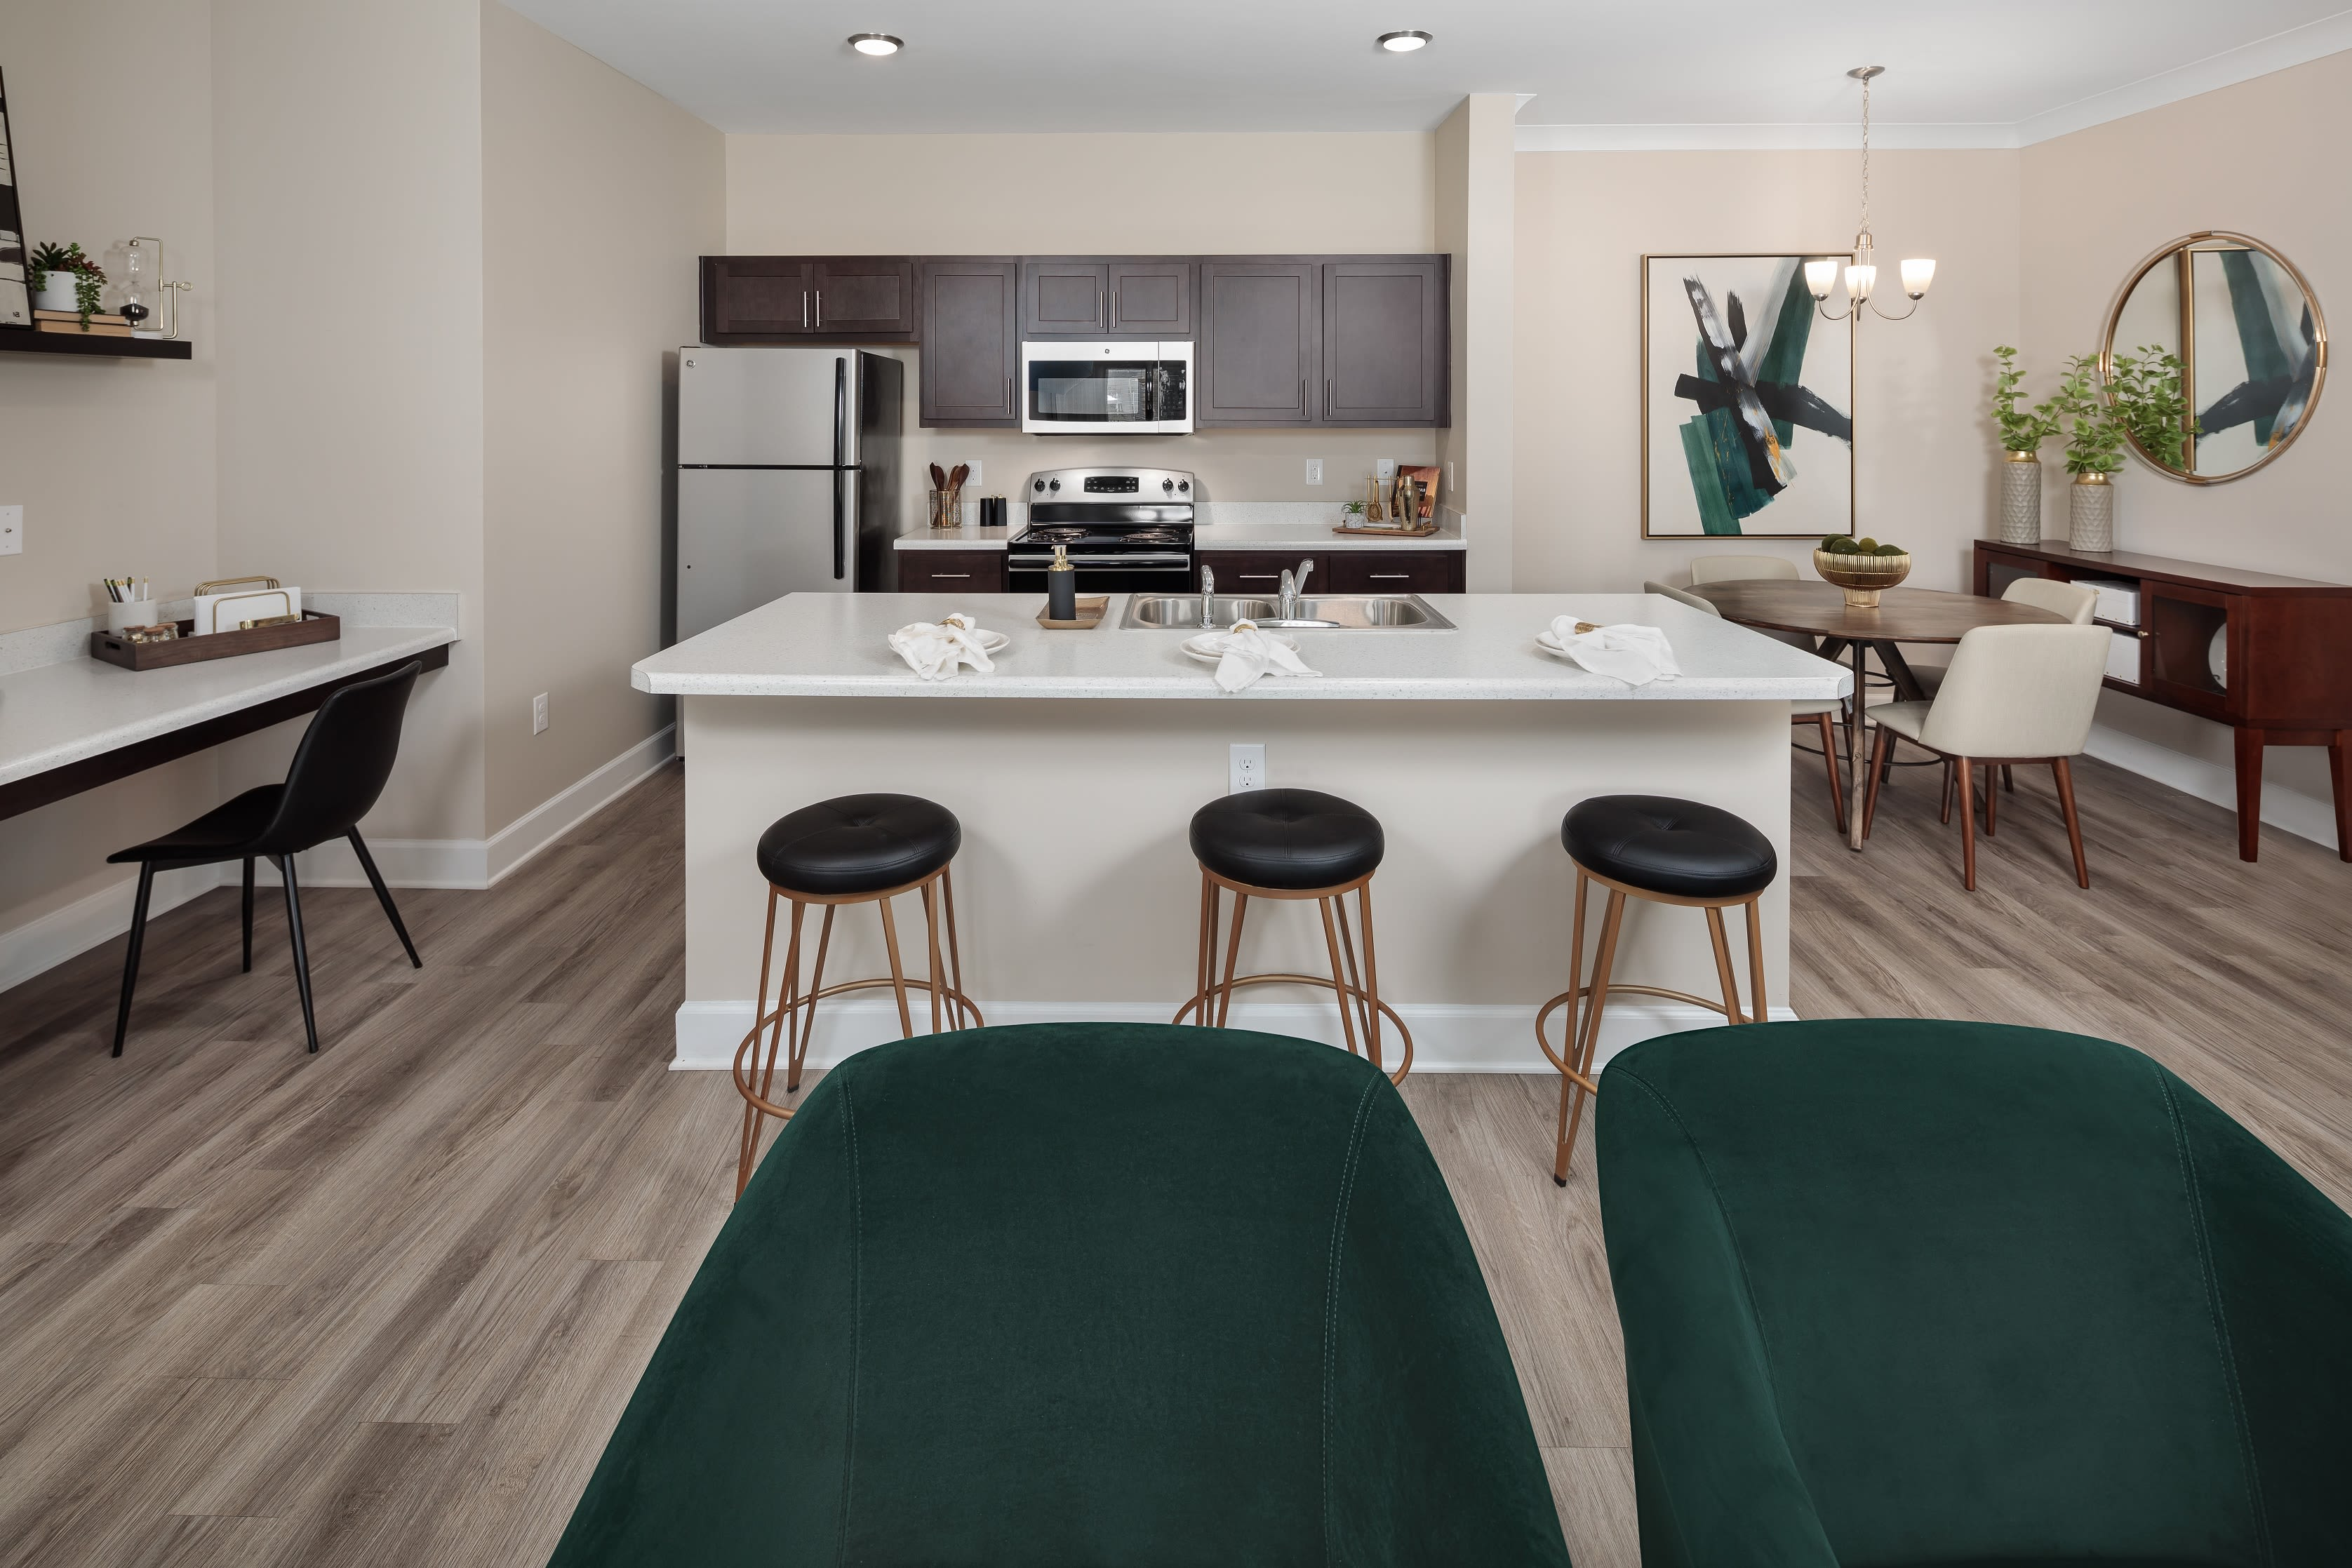 Large kitchen with dark cabinets and stainless steel appliances at The Isaac in Summerville, South Carolina